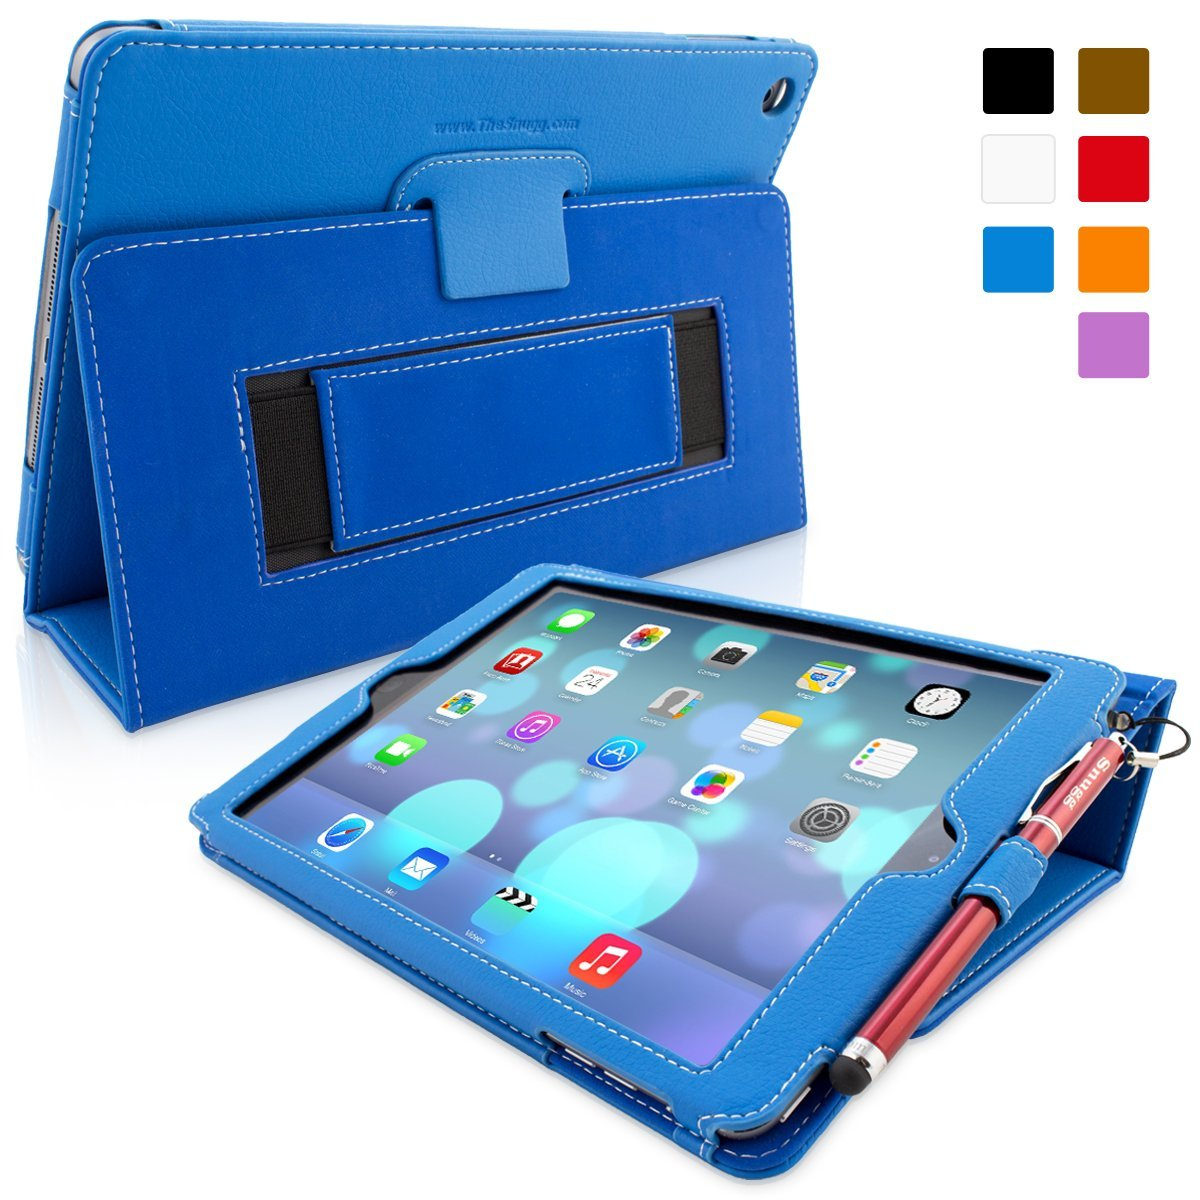 snugg_ipad_quality_leather_ipad_air_case